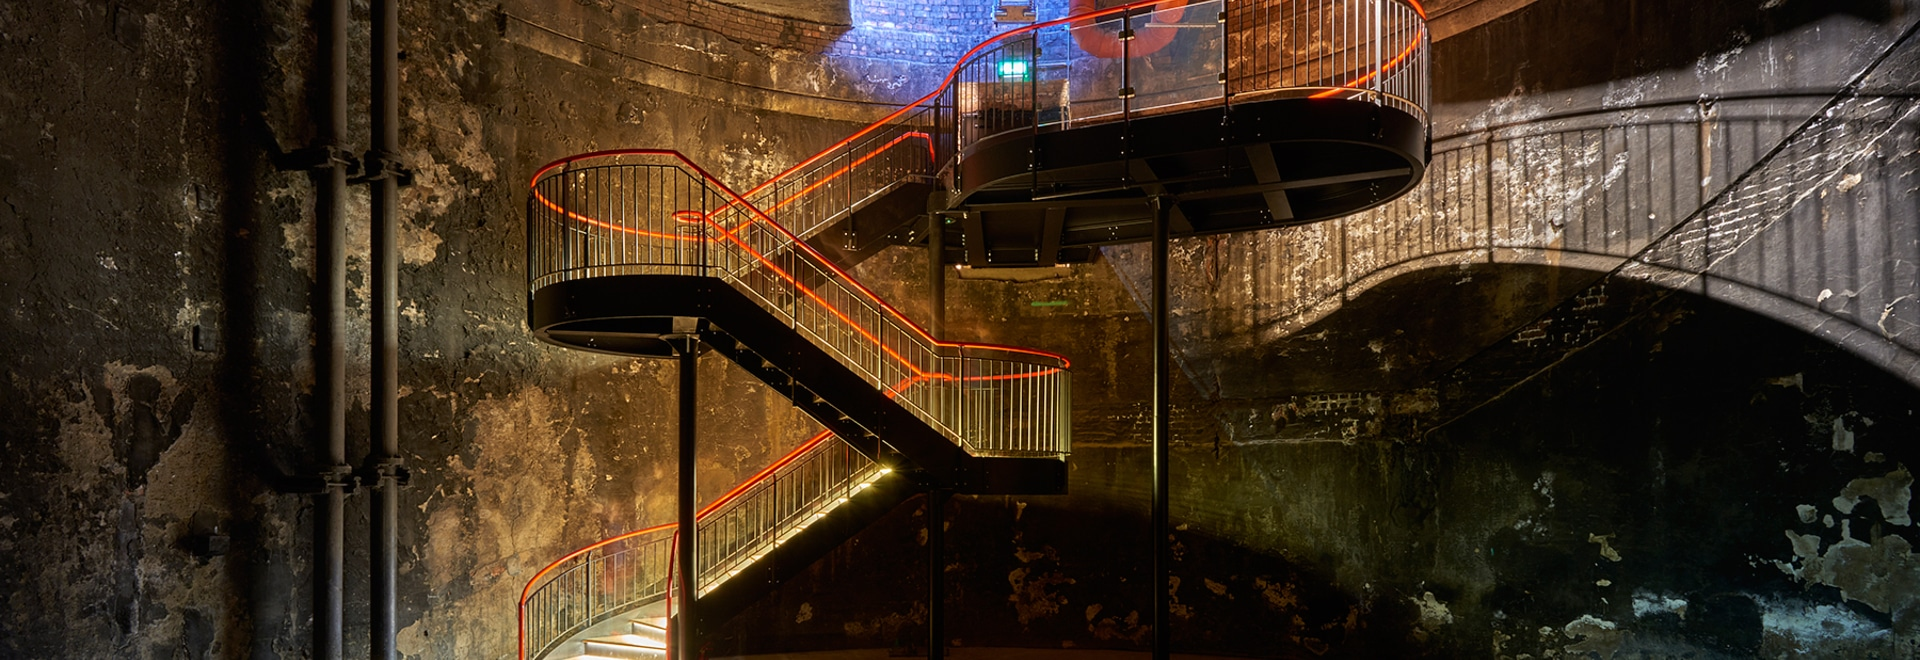 tate harmer transforms part of brunel's thames tunnel into a subterranean venue